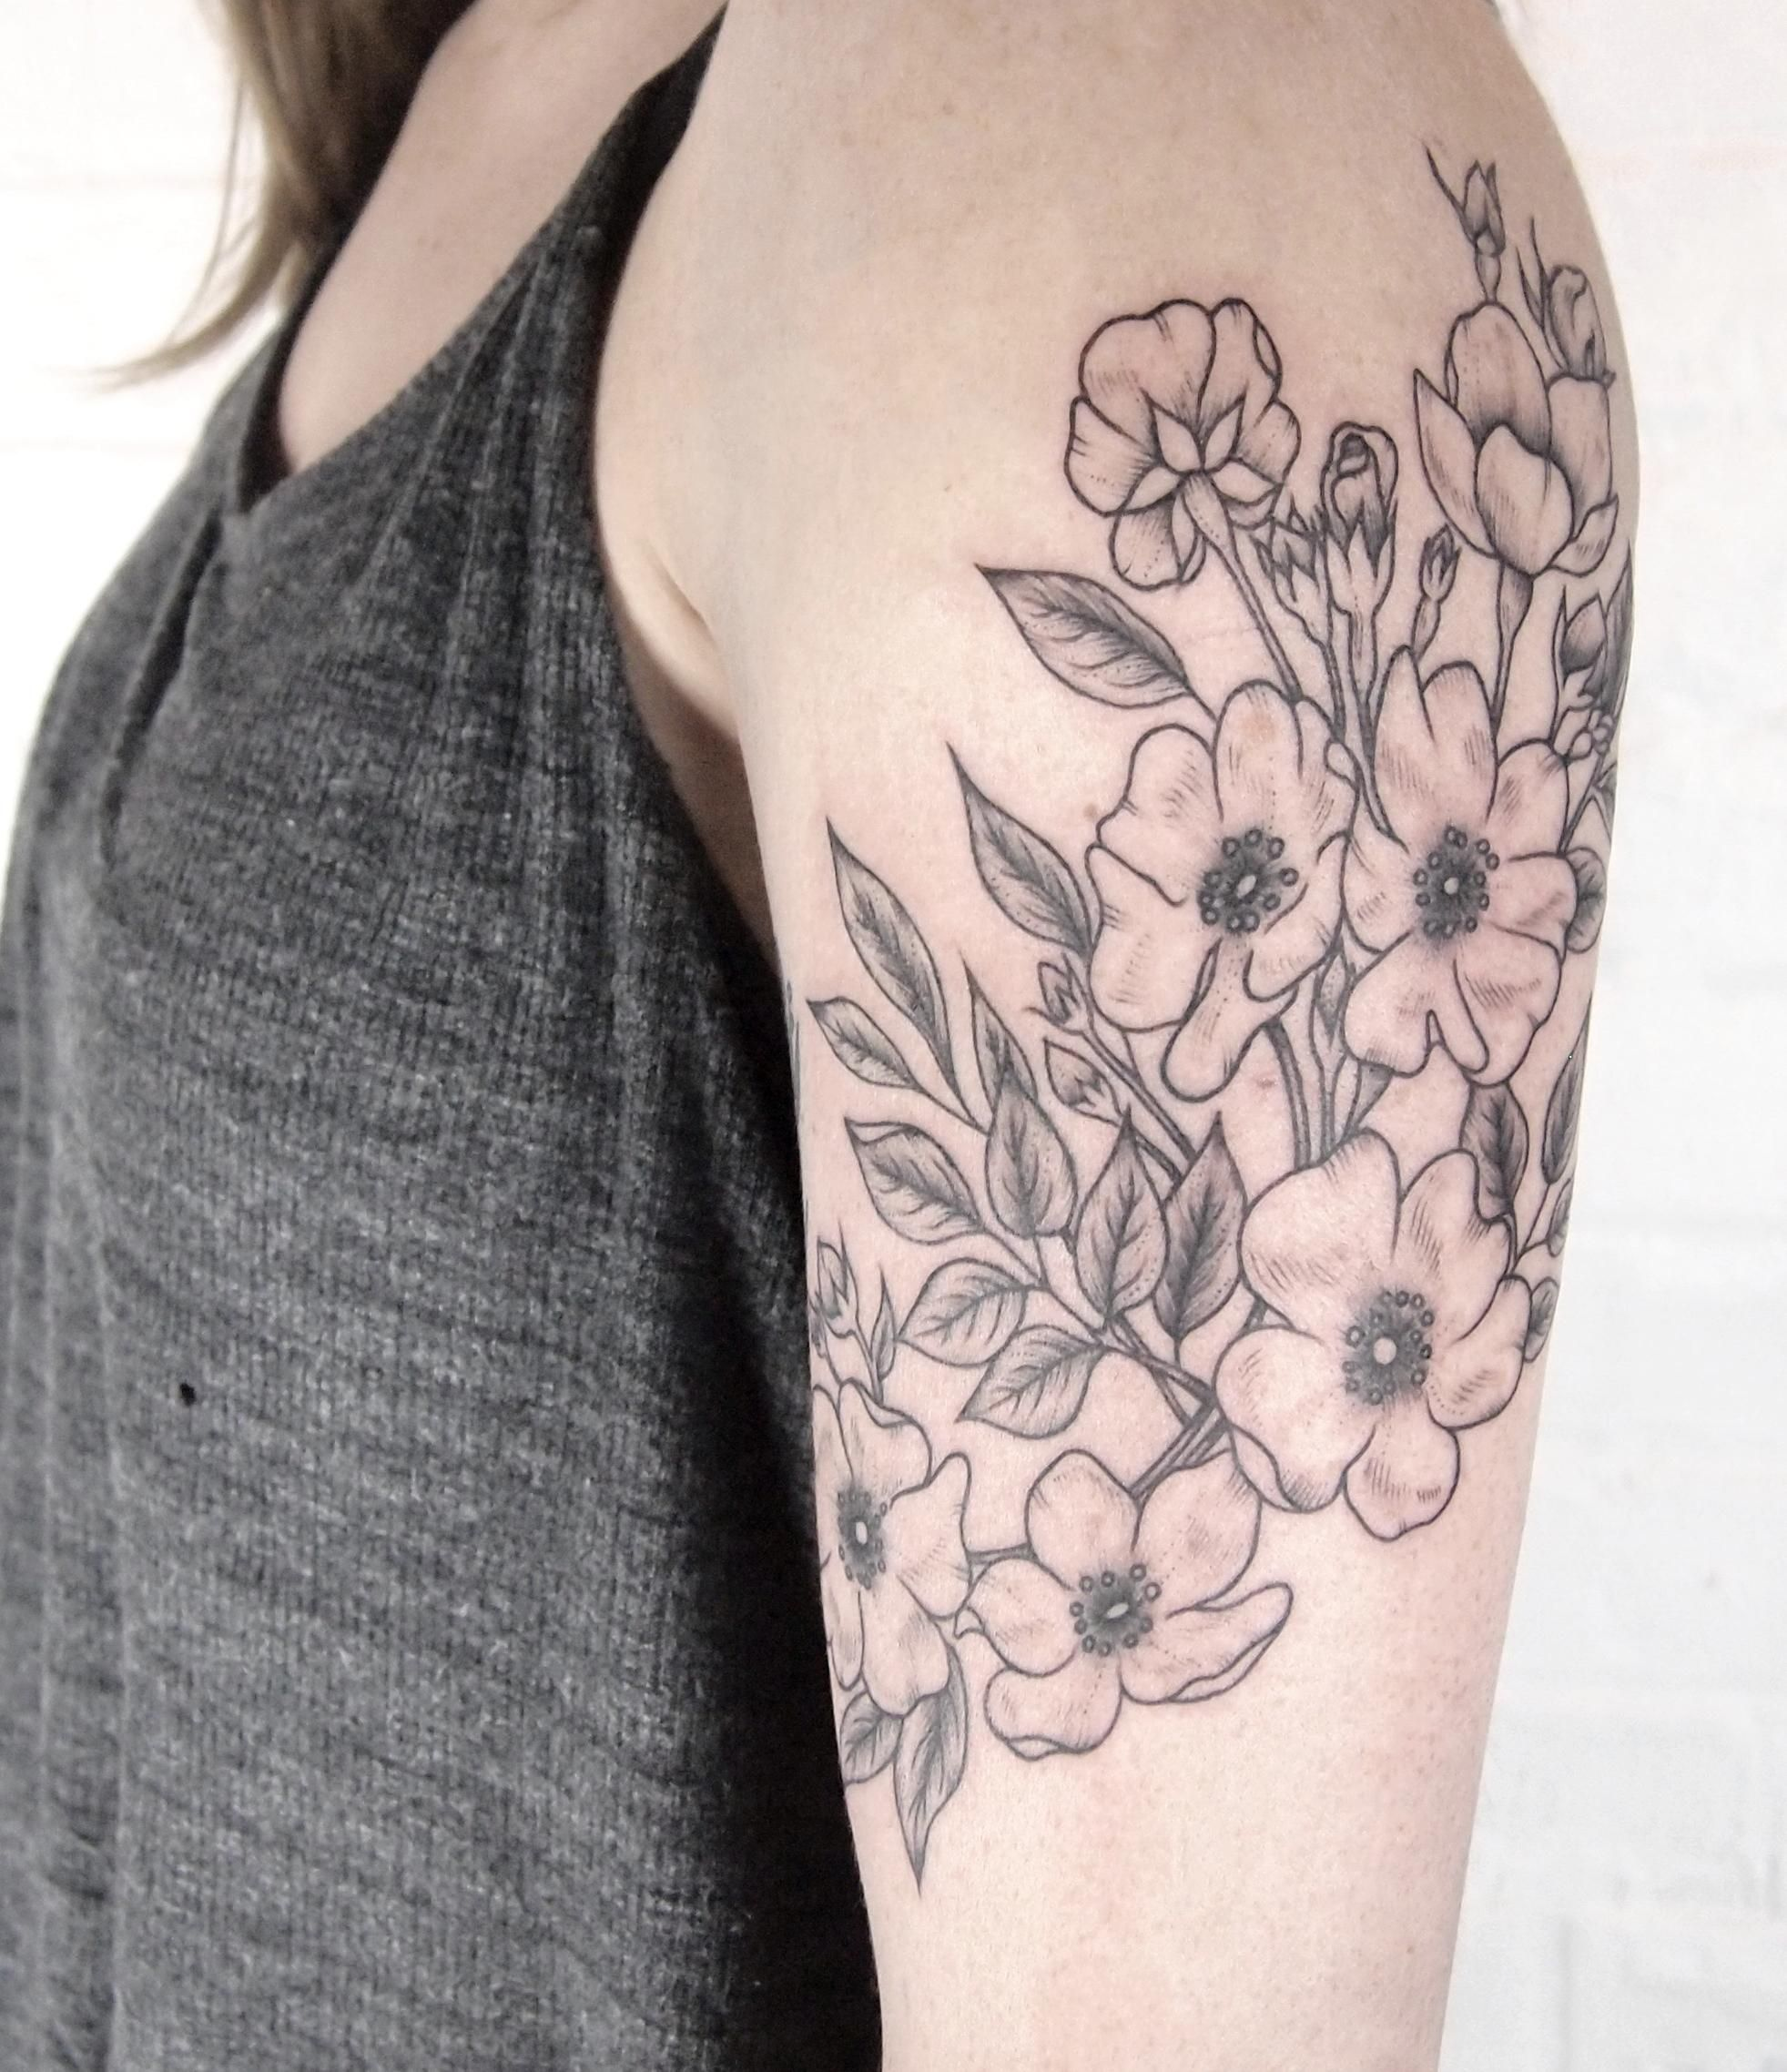 wild roses wrapping around arm tattoo people toronto jess chen tattoos pinterest arm. Black Bedroom Furniture Sets. Home Design Ideas